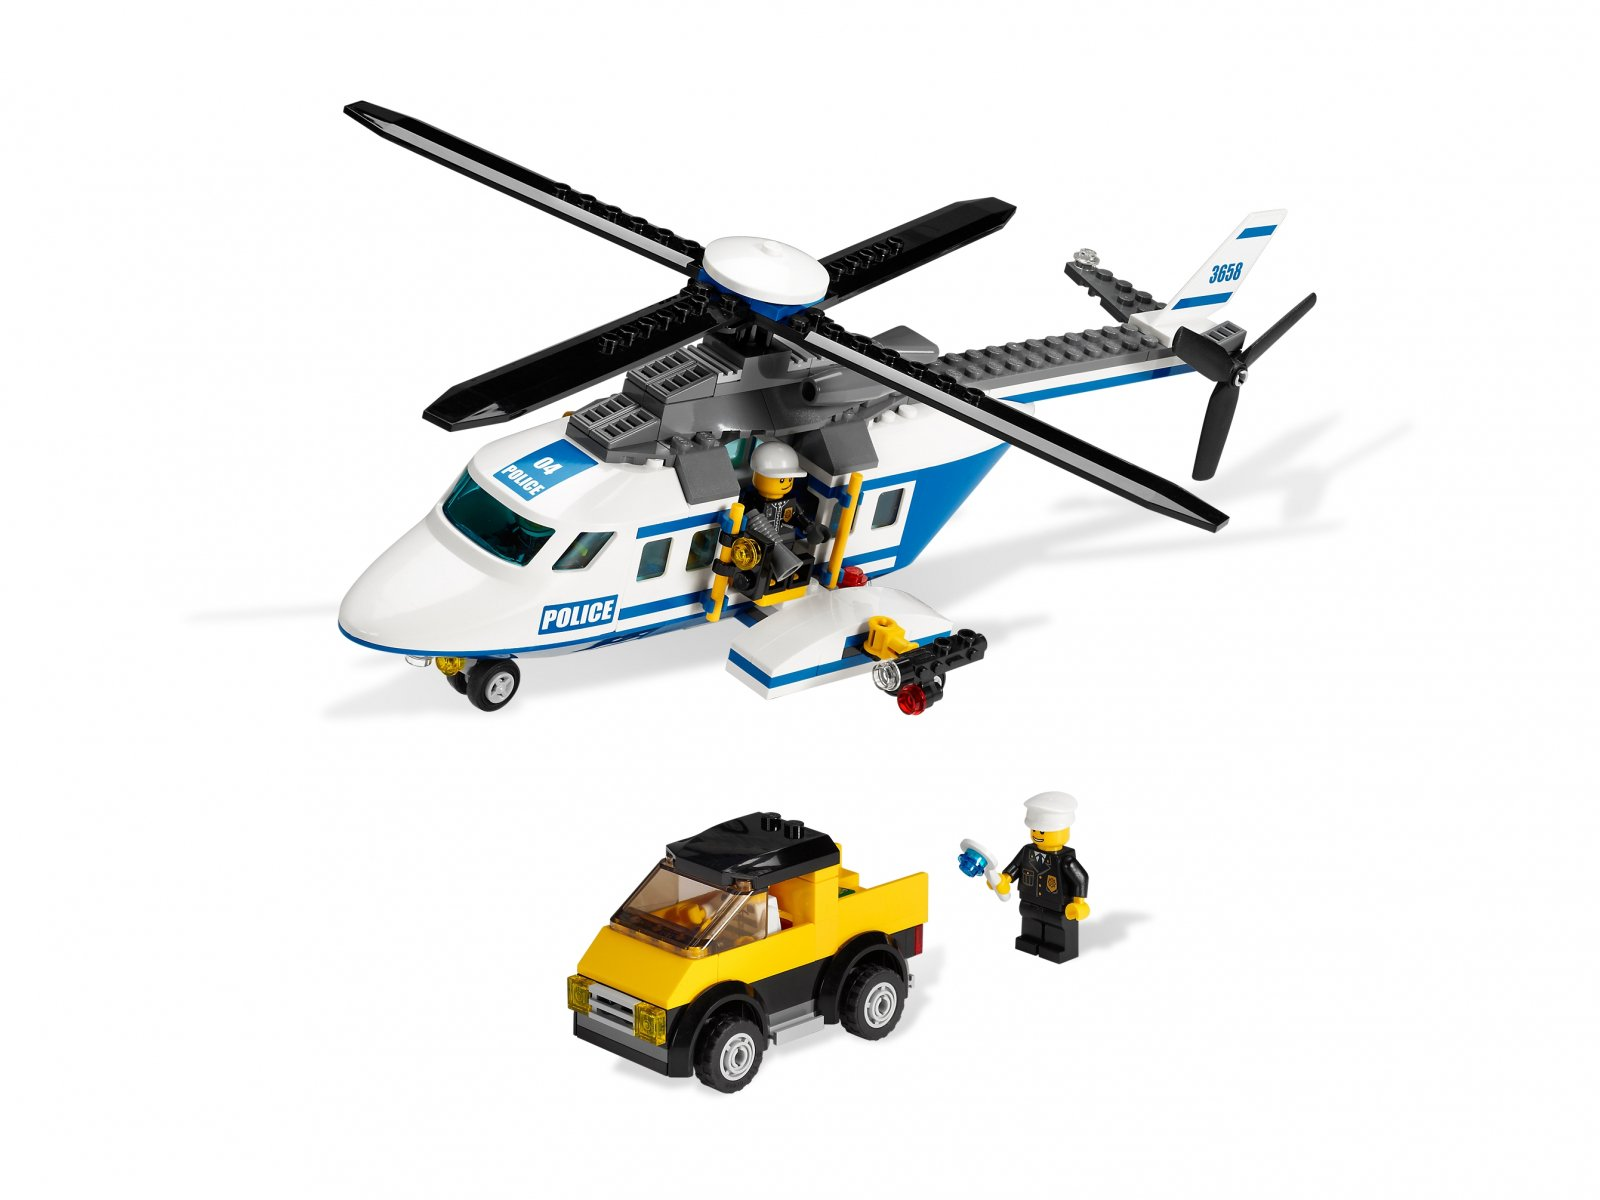 LEGO 3658 City Police Helicopter